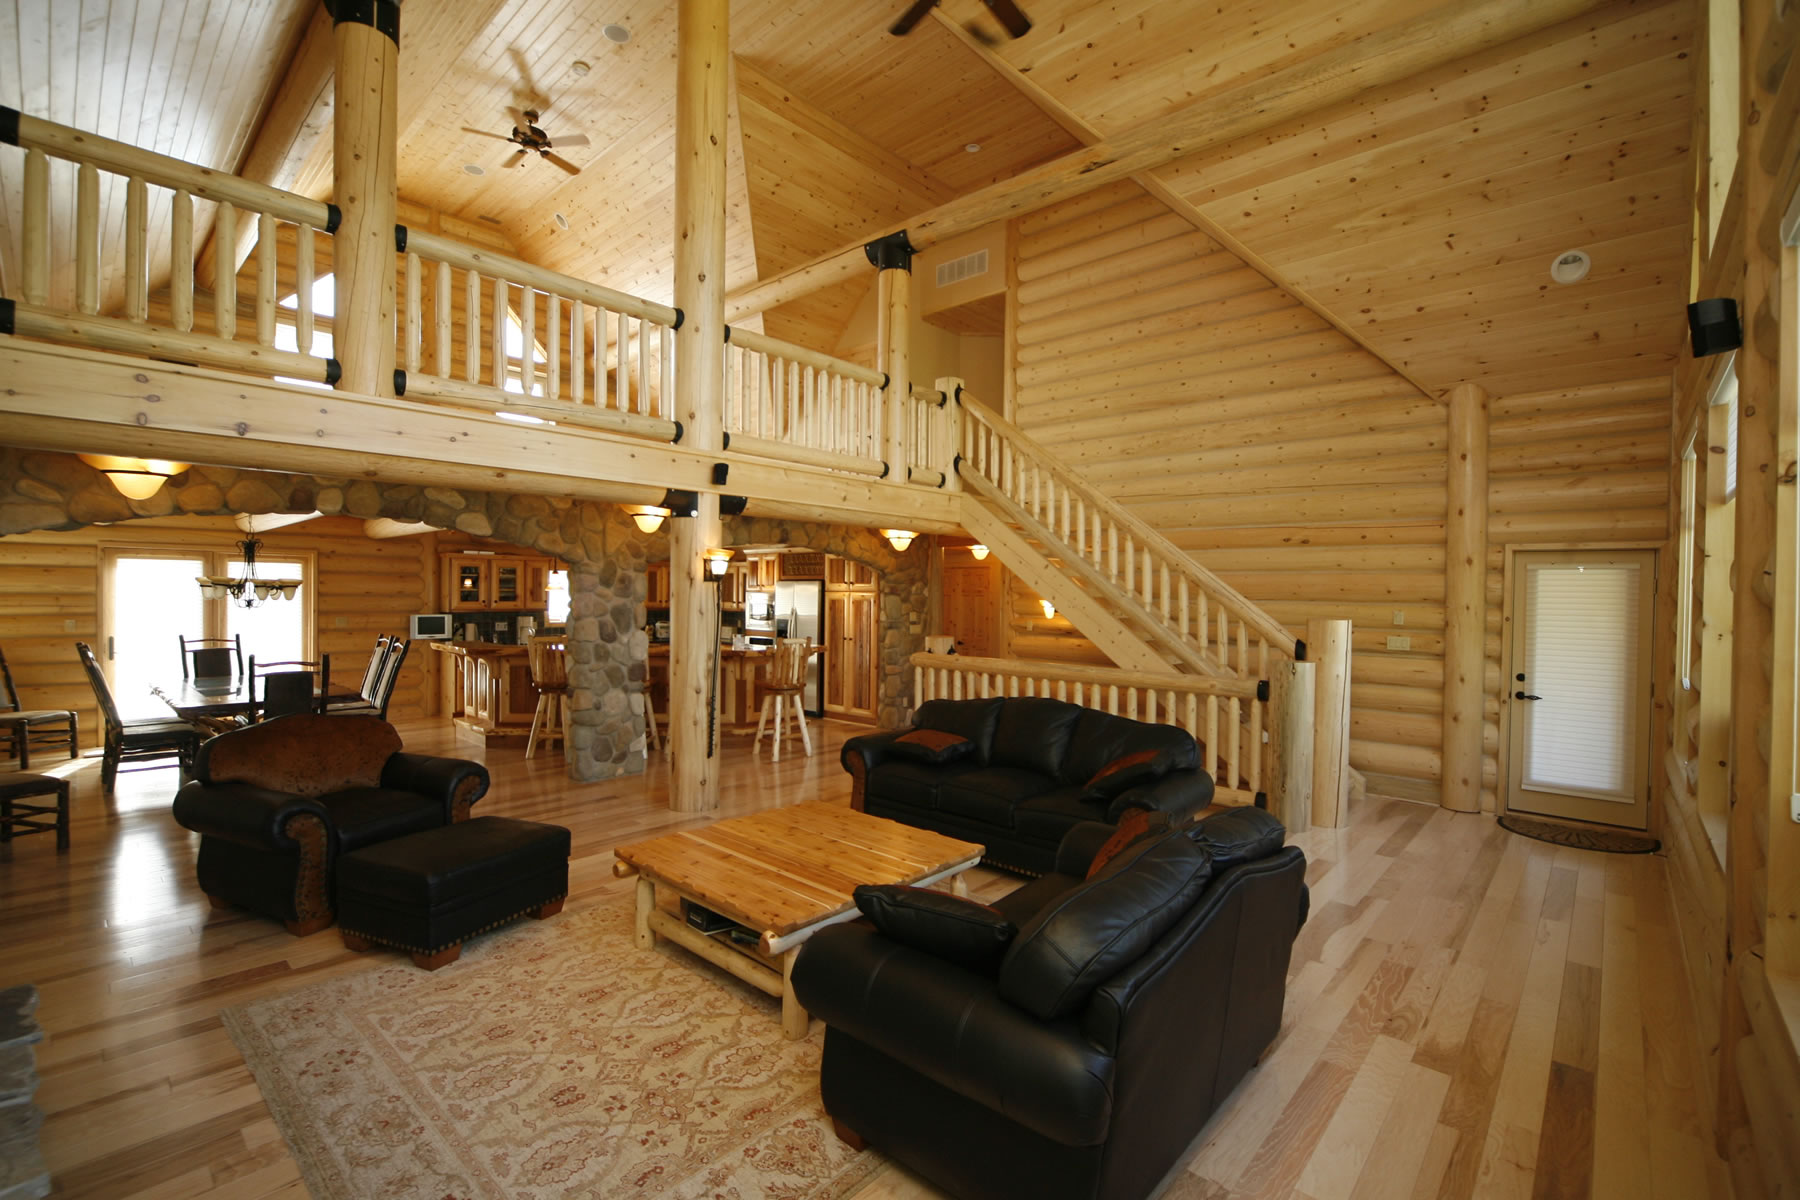 Whisper creek log homes oke woodsmith building systems inc for House inside images